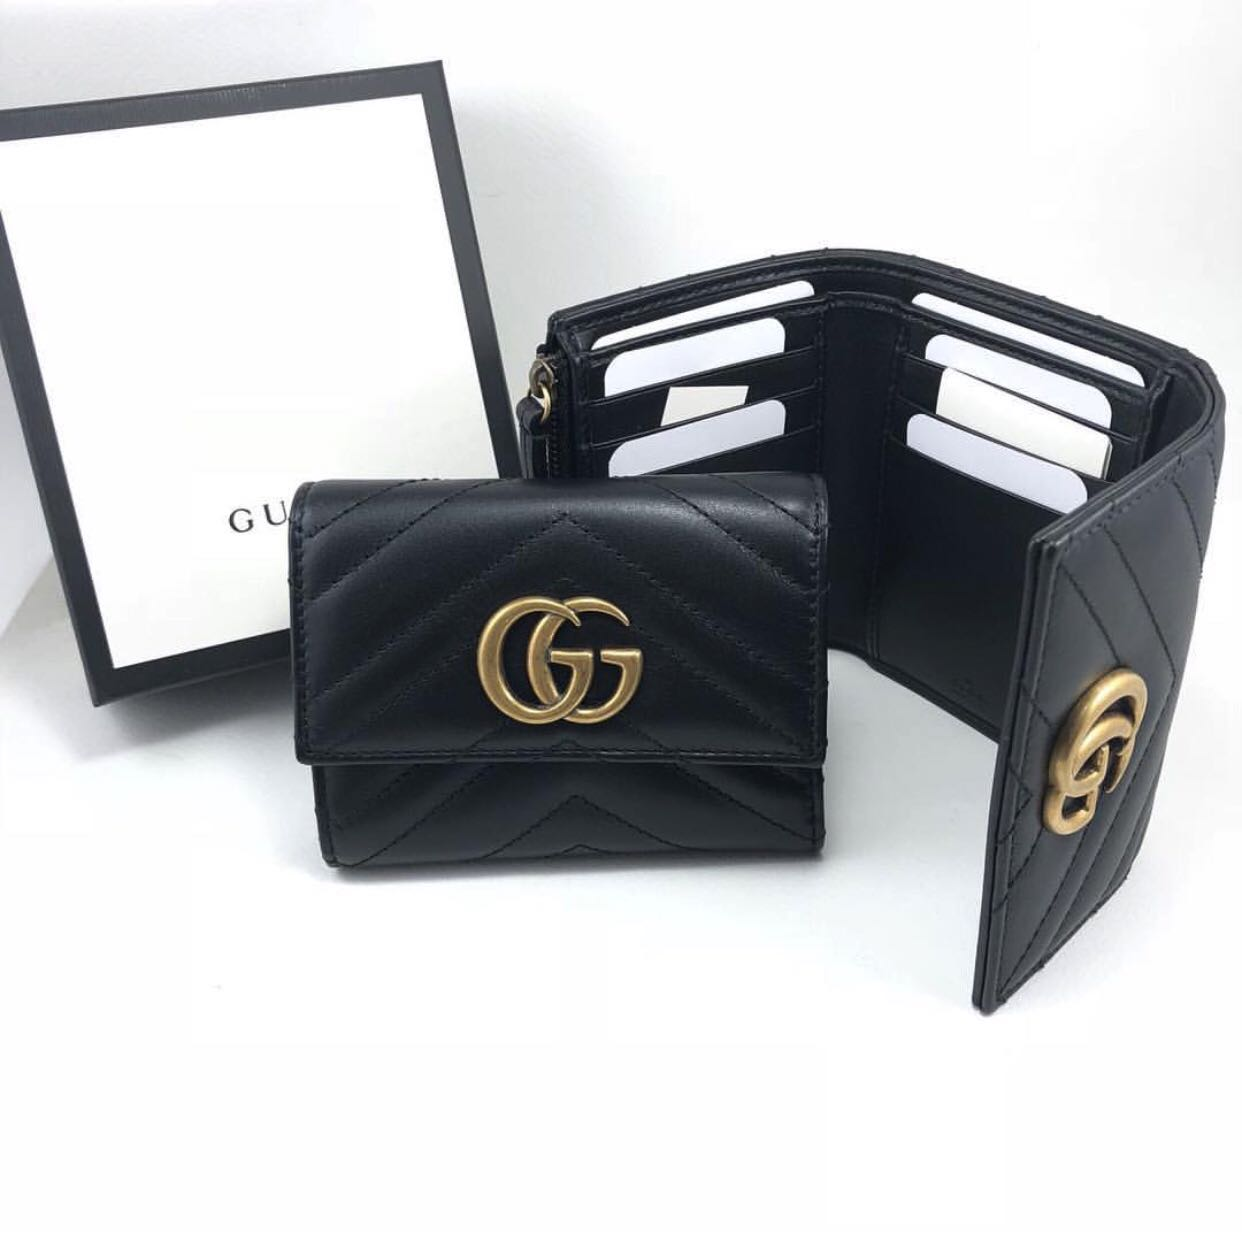 339bc2e2f8cd Gucci trifold wallet [SALE], Luxury, Bags & Wallets, Wallets on Carousell